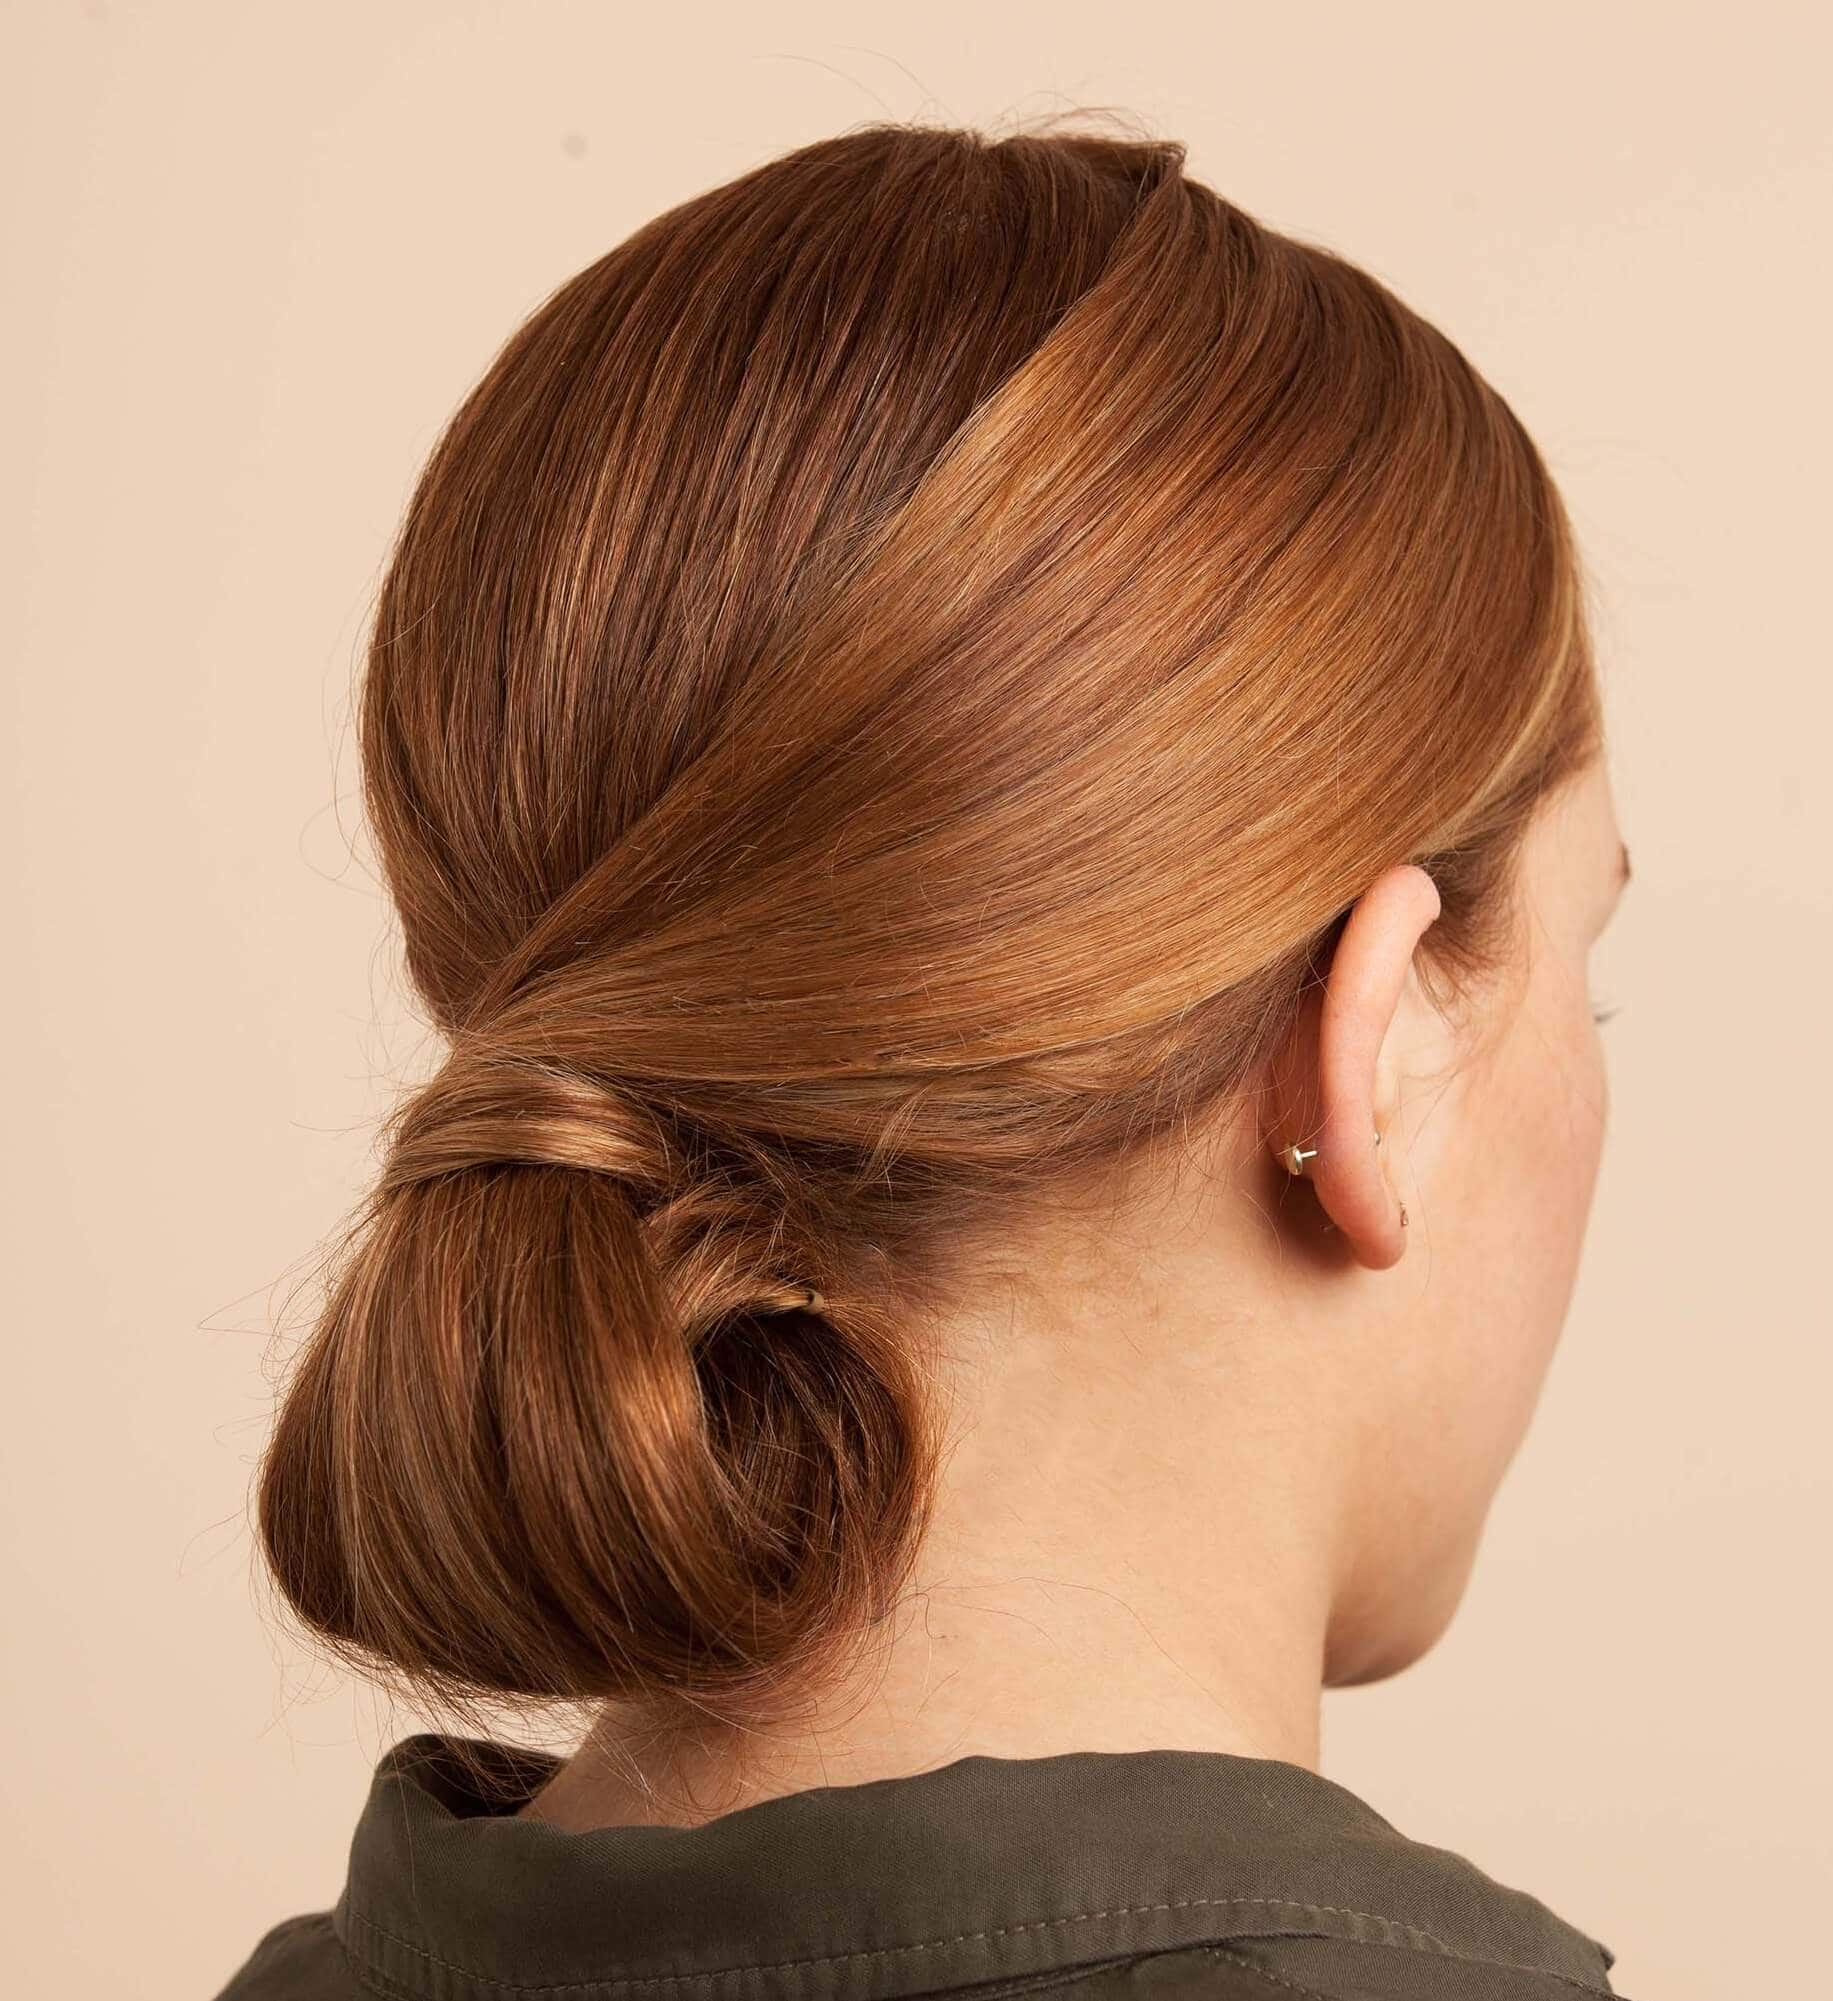 Party hairstyles: Woman with light golden brown straight hair in chignon updo bun tuck.